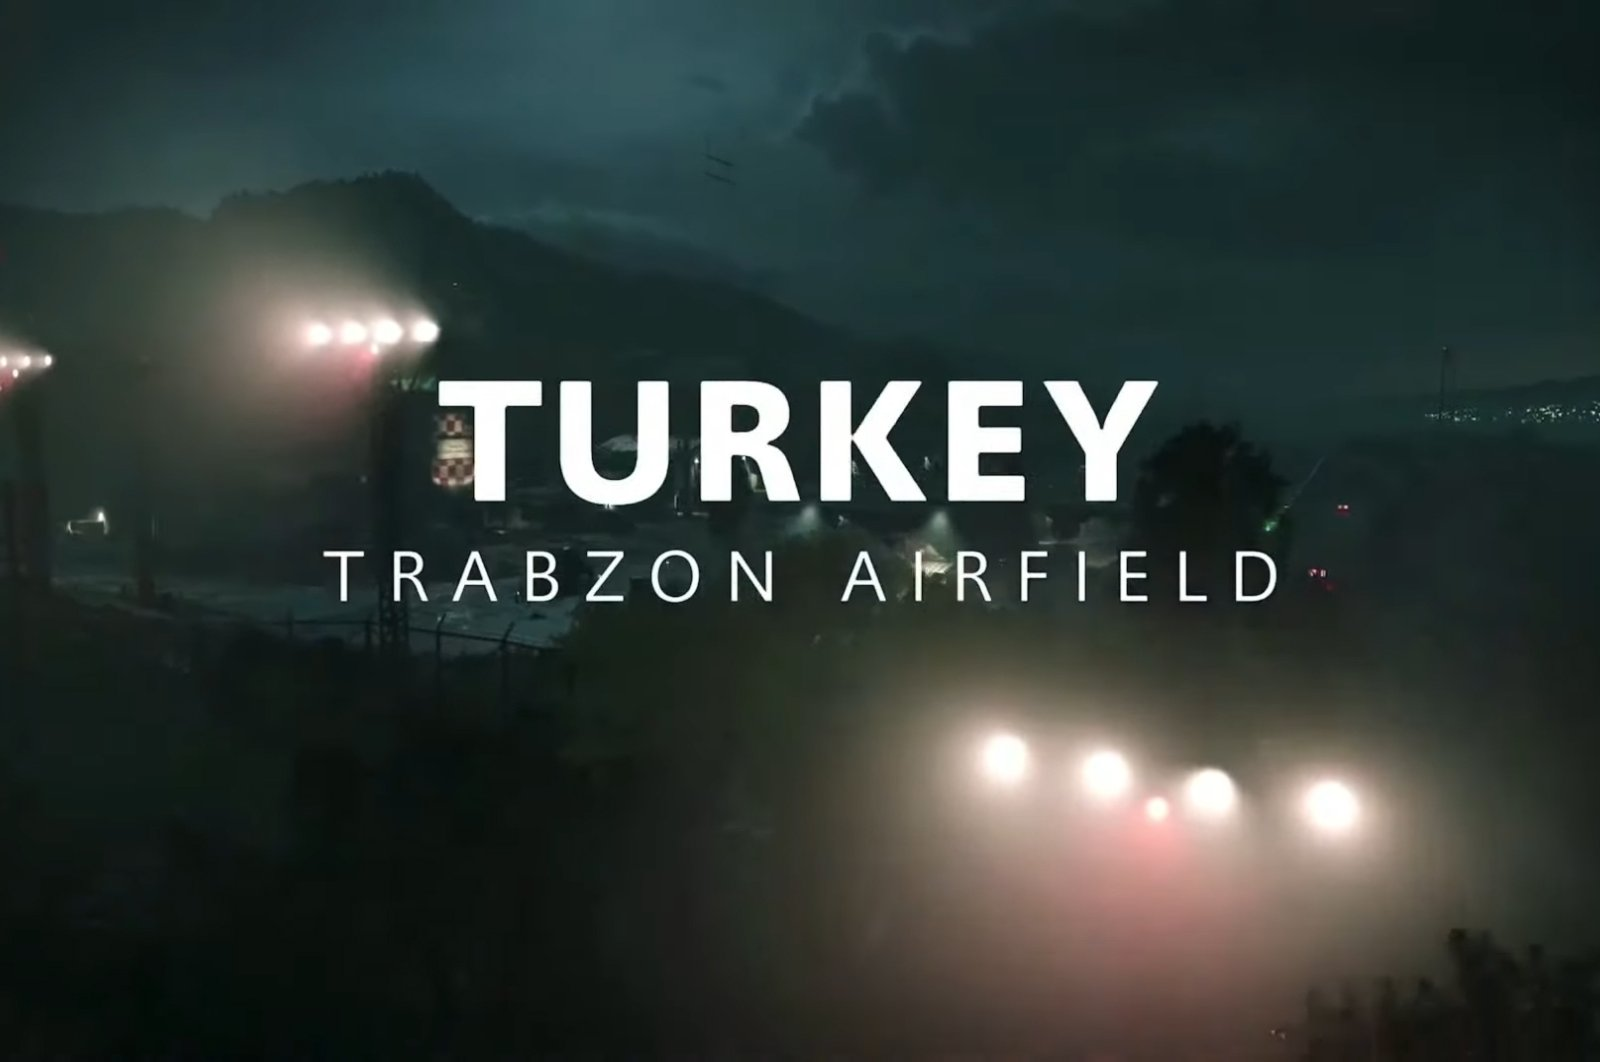 A screengrab from the Trabzon Airfield scene in Call of Duty Black Ops: Cold War.